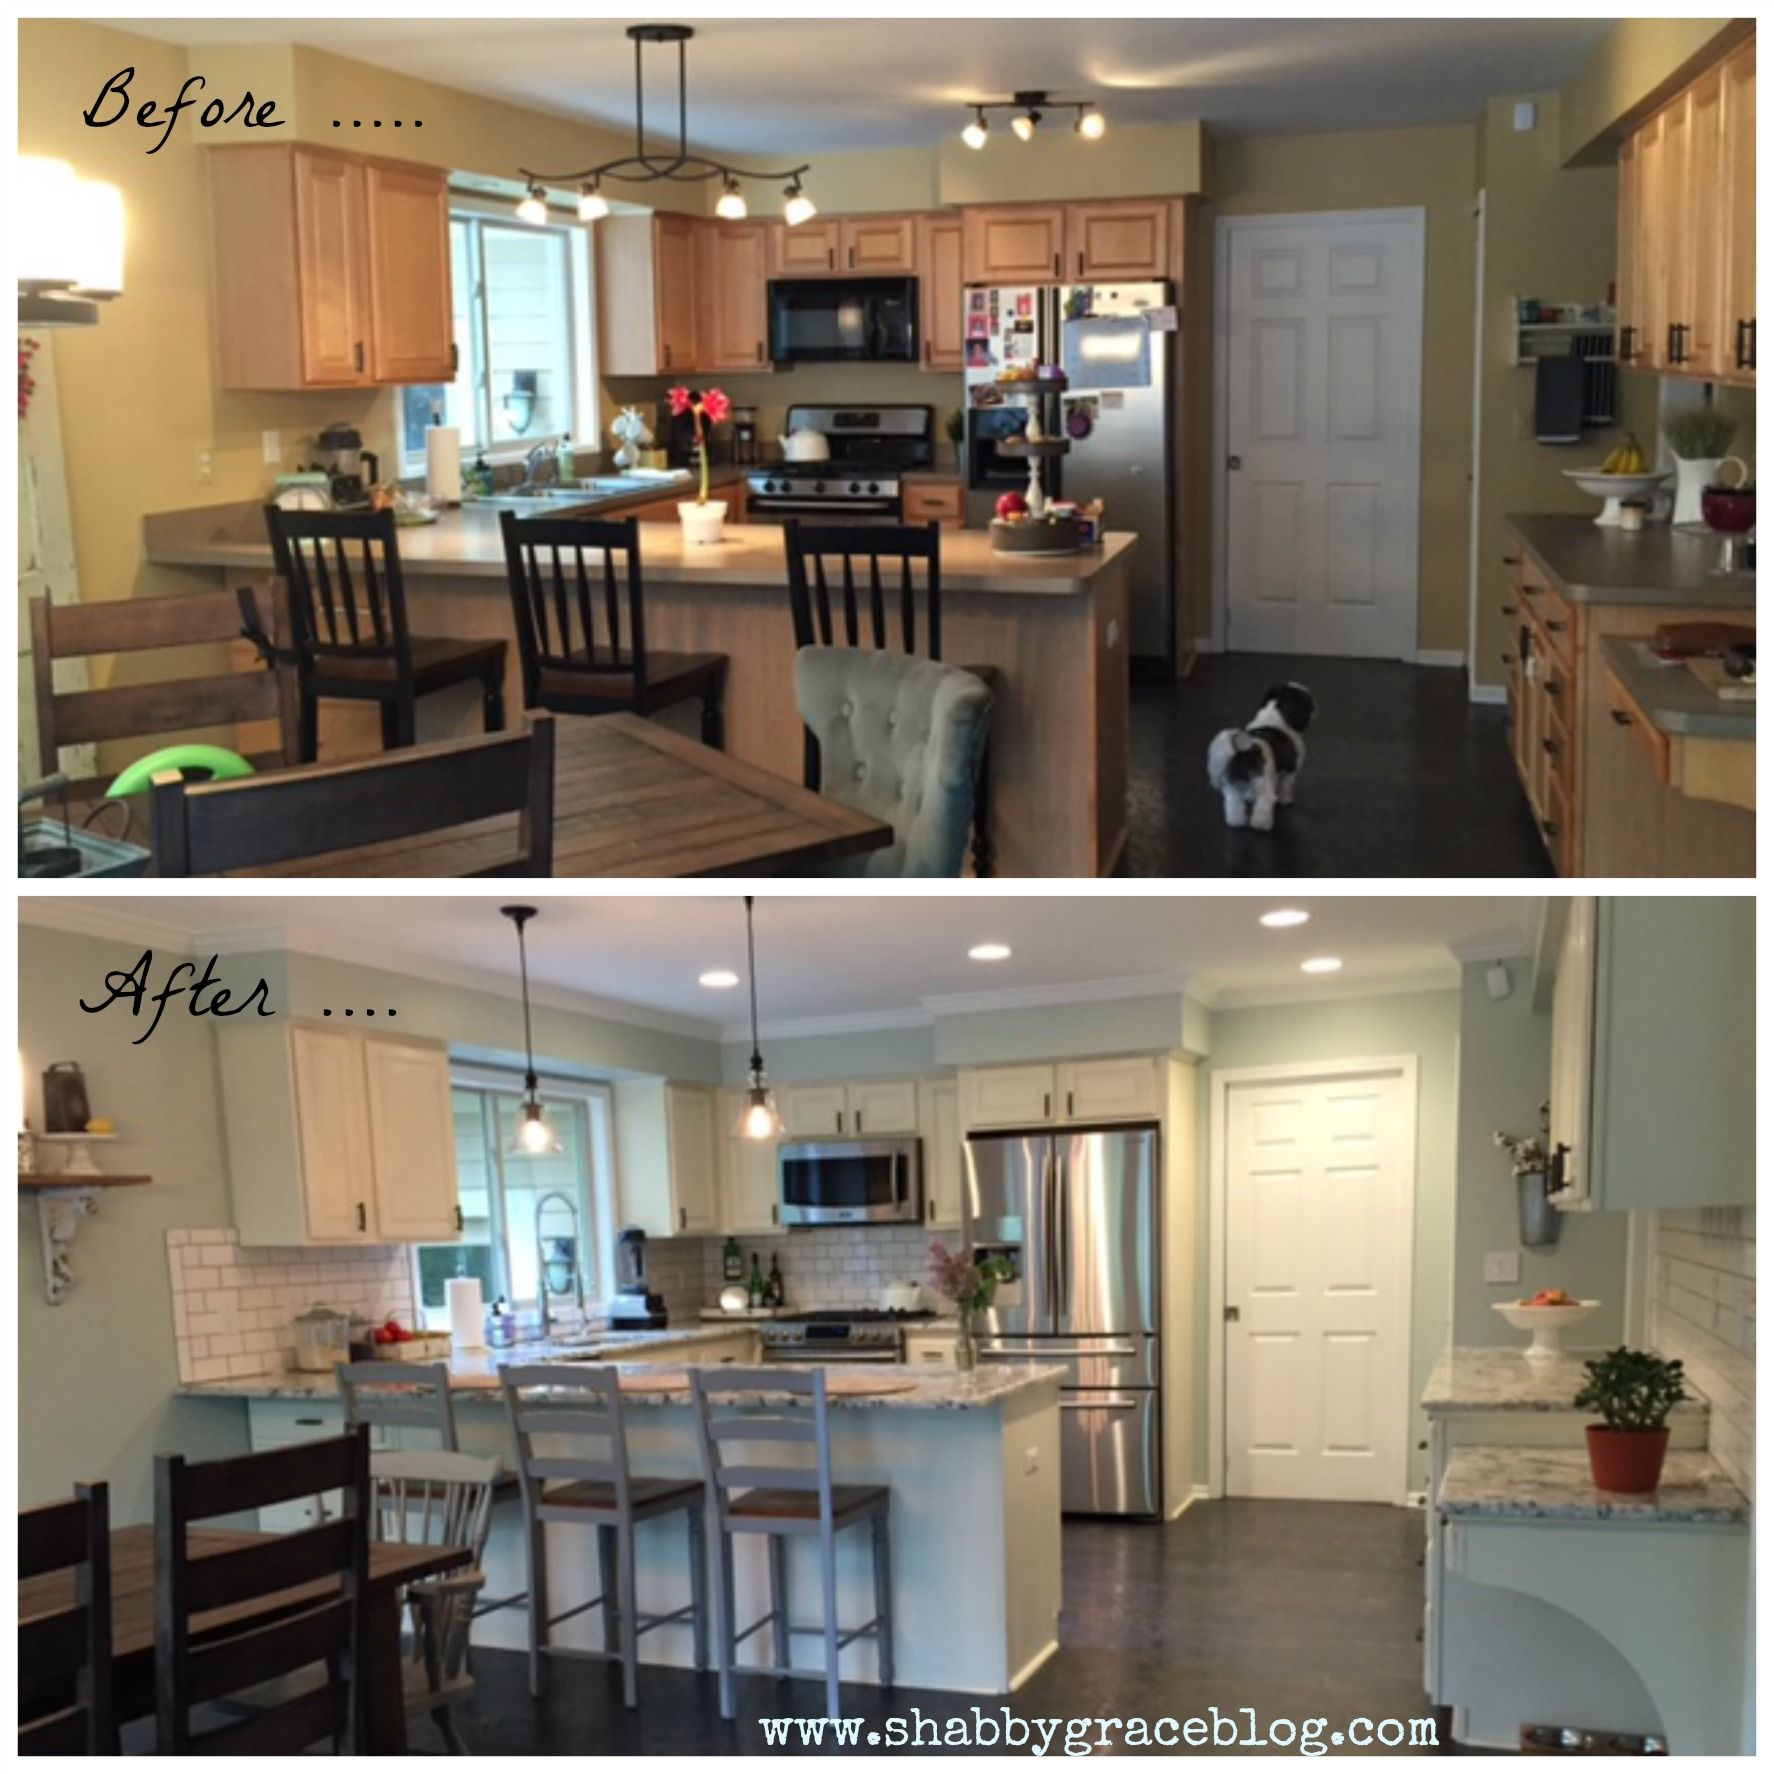 White Kitchen Remodel Before And After contemplationbehr, which is virtually the same as sherwin